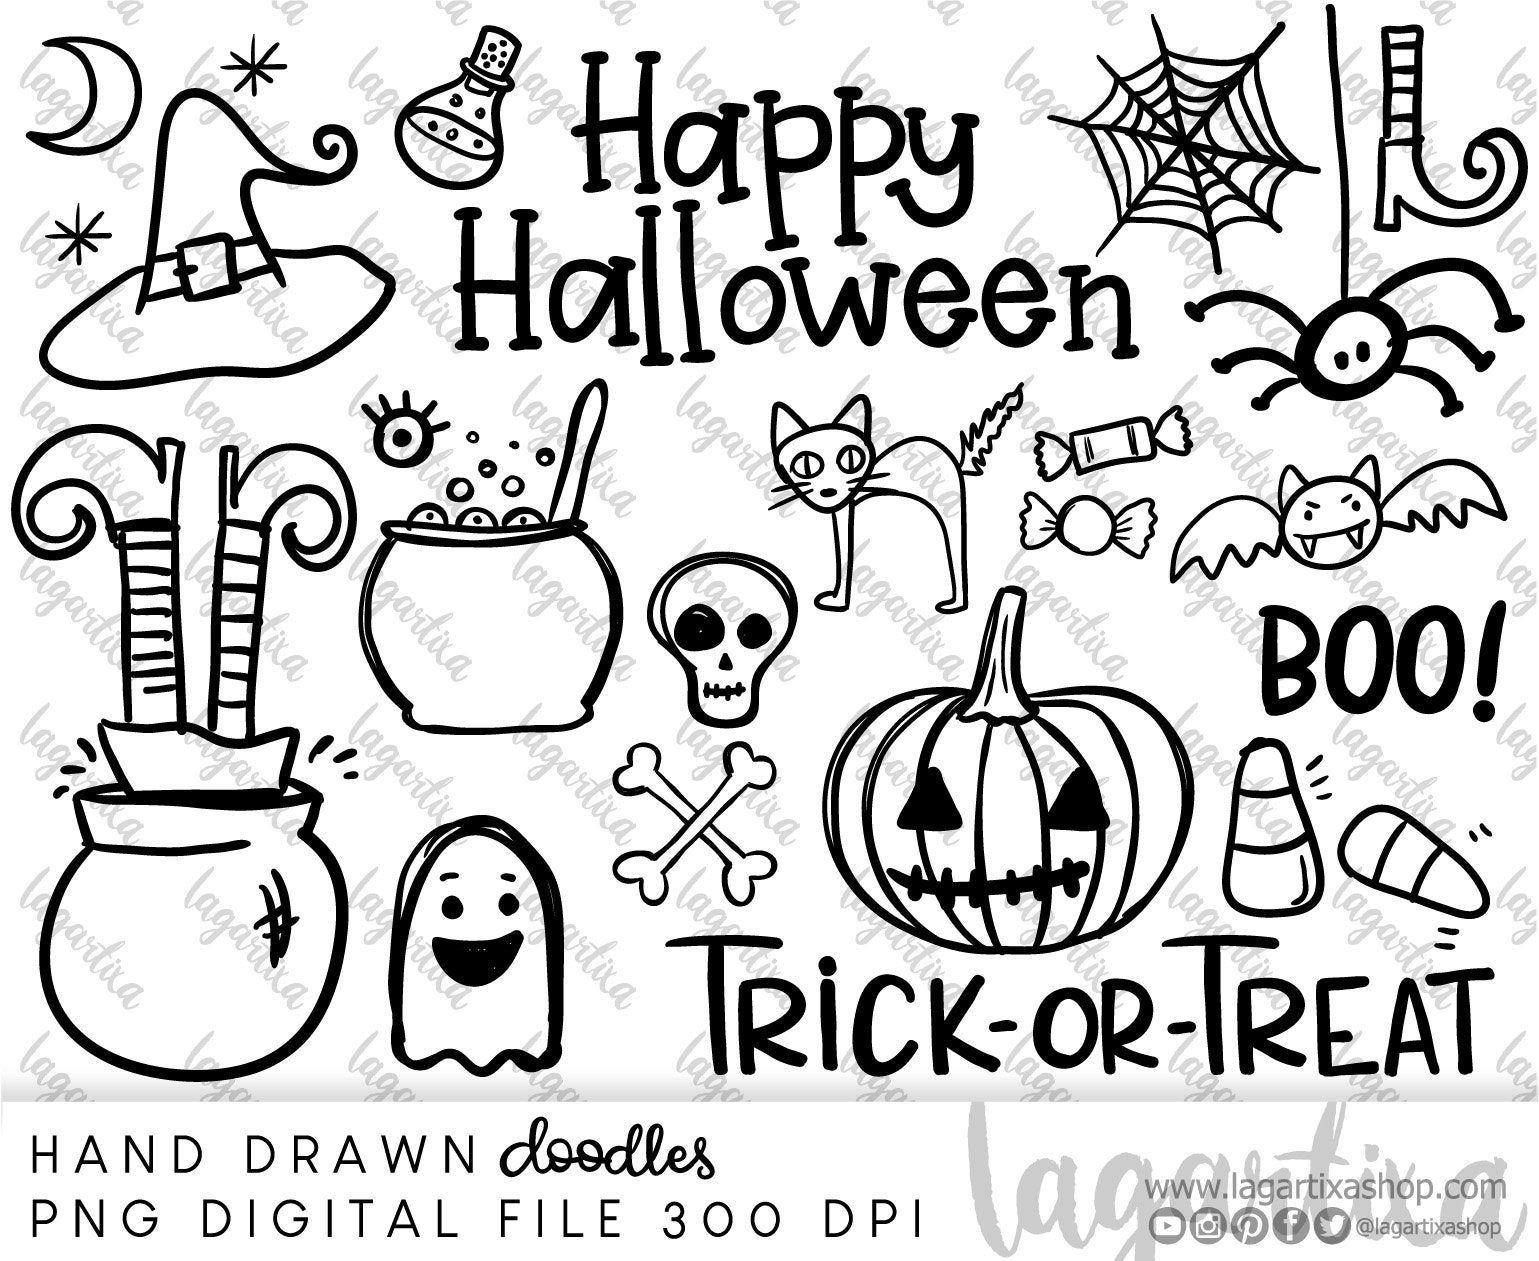 Happy Halloween Hand Drawn Doodles Clipart Png Svg Bat Witch Etsy How To Draw Hands Halloween Images Happy Halloween